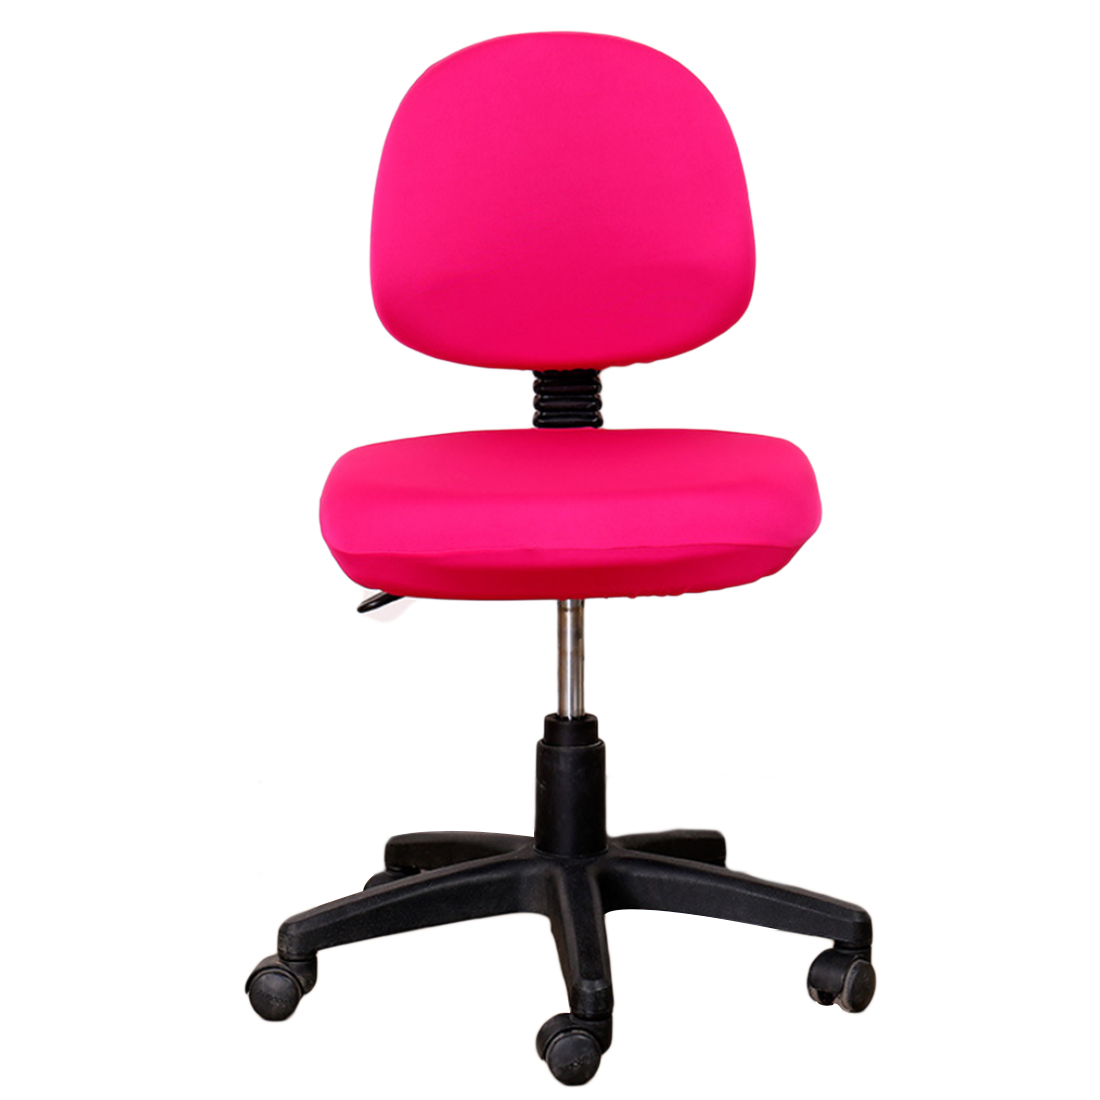 Elastic Chair Covers Made with Polyester Material For Office and Computer Chair in Universal Size 17